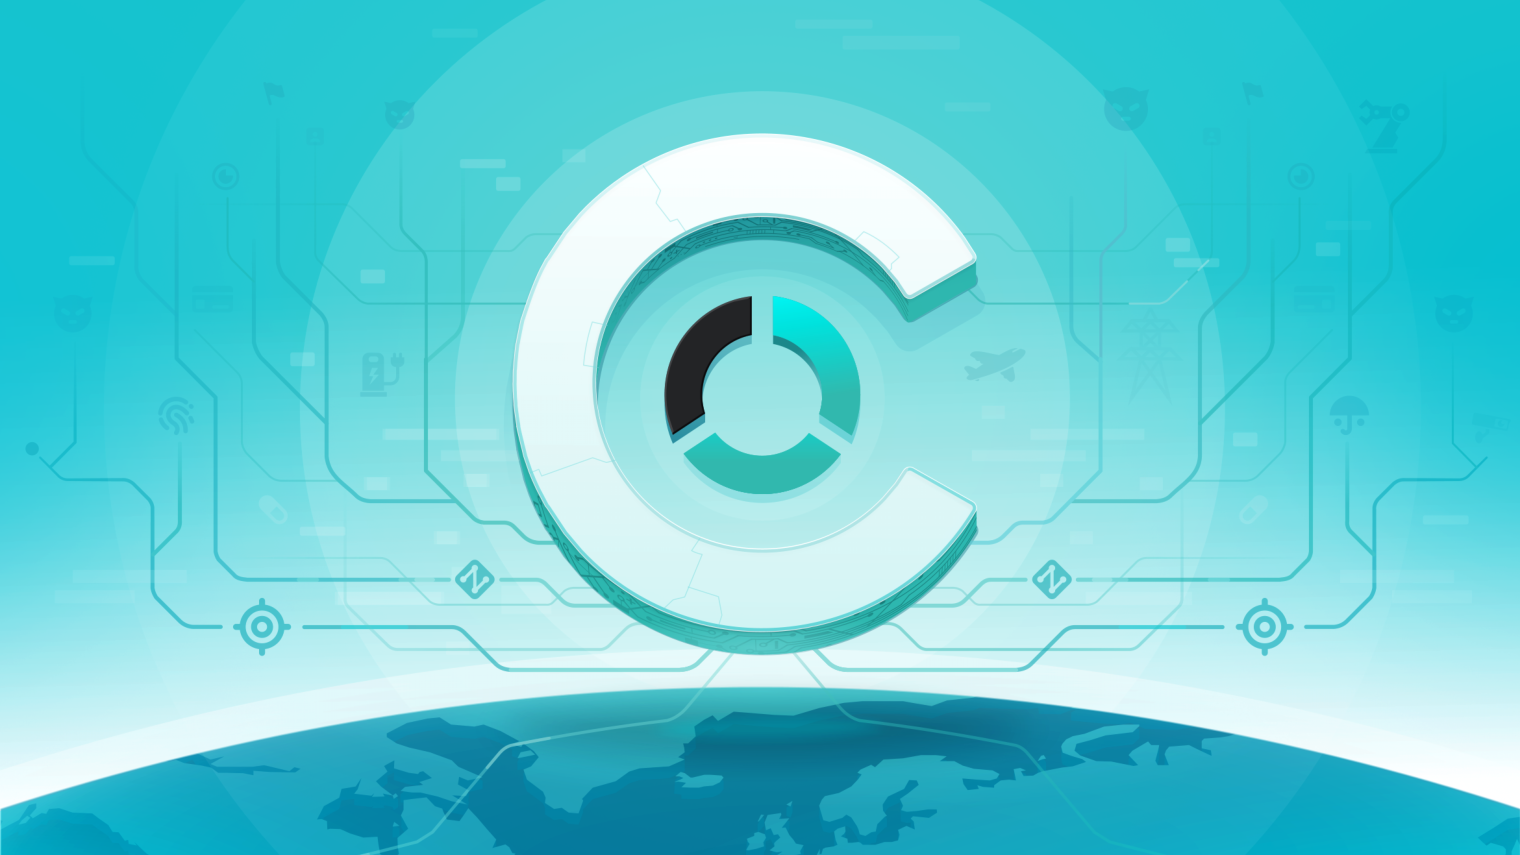 Our Series-C investment expands our horizon: what can you expect?